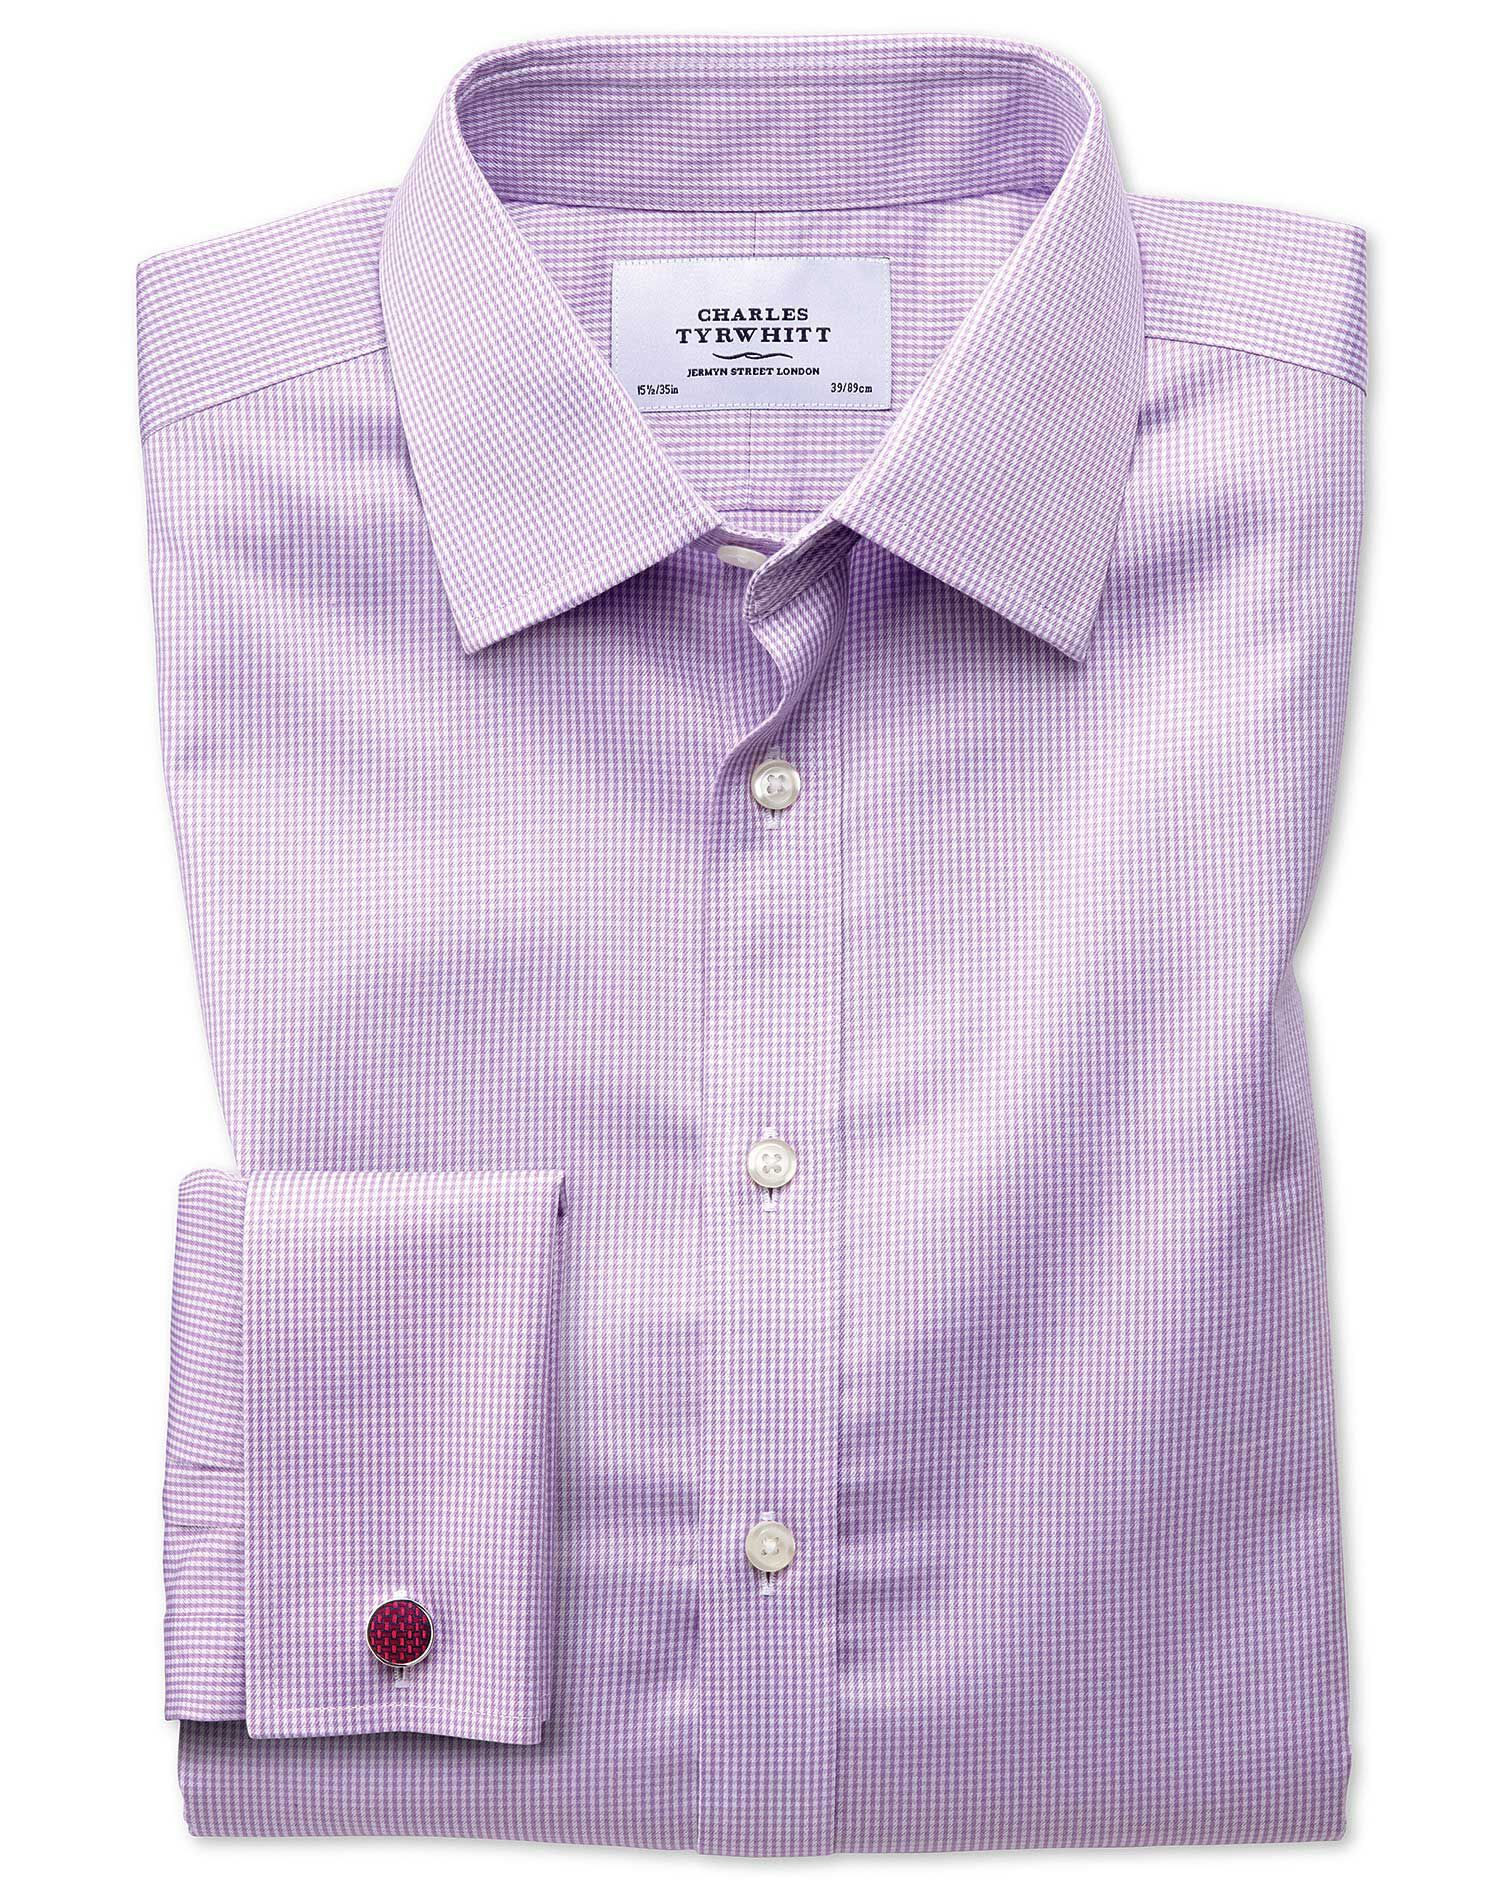 Extra Slim Fit Non-Iron Puppytooth Lilac Cotton Formal Shirt Double Cuff Size 17/37 by Charles Tyrwh